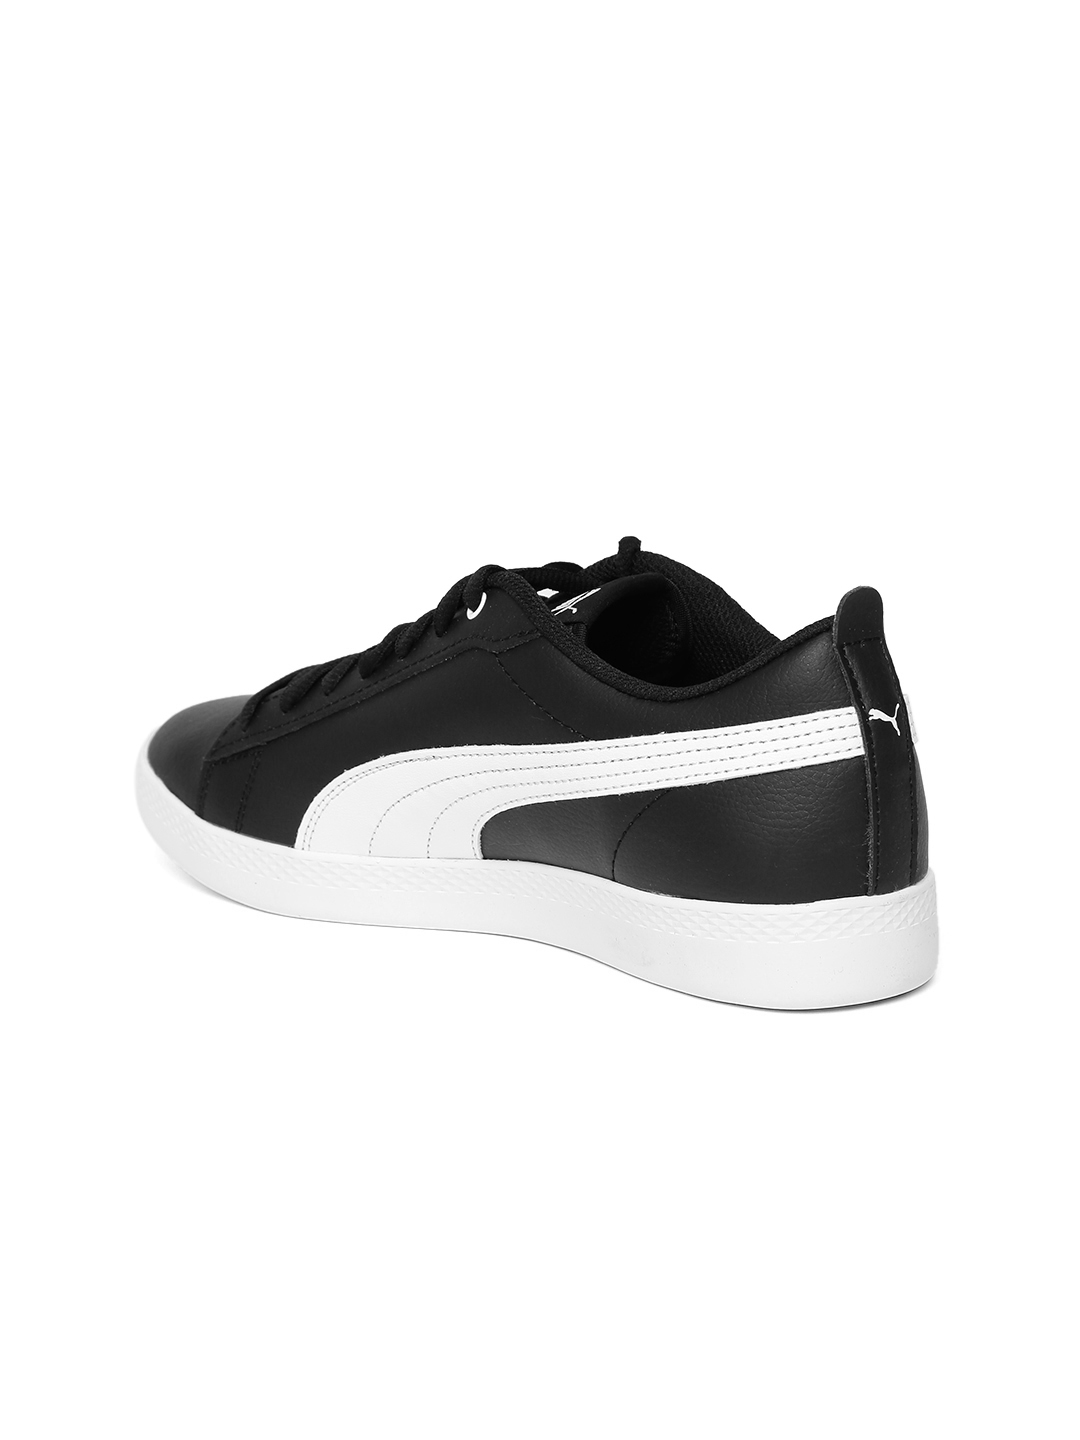 d9d4c516b5d6 Buy Puma Women Black Smash V2 Leather Sneakers - Casual Shoes for ...